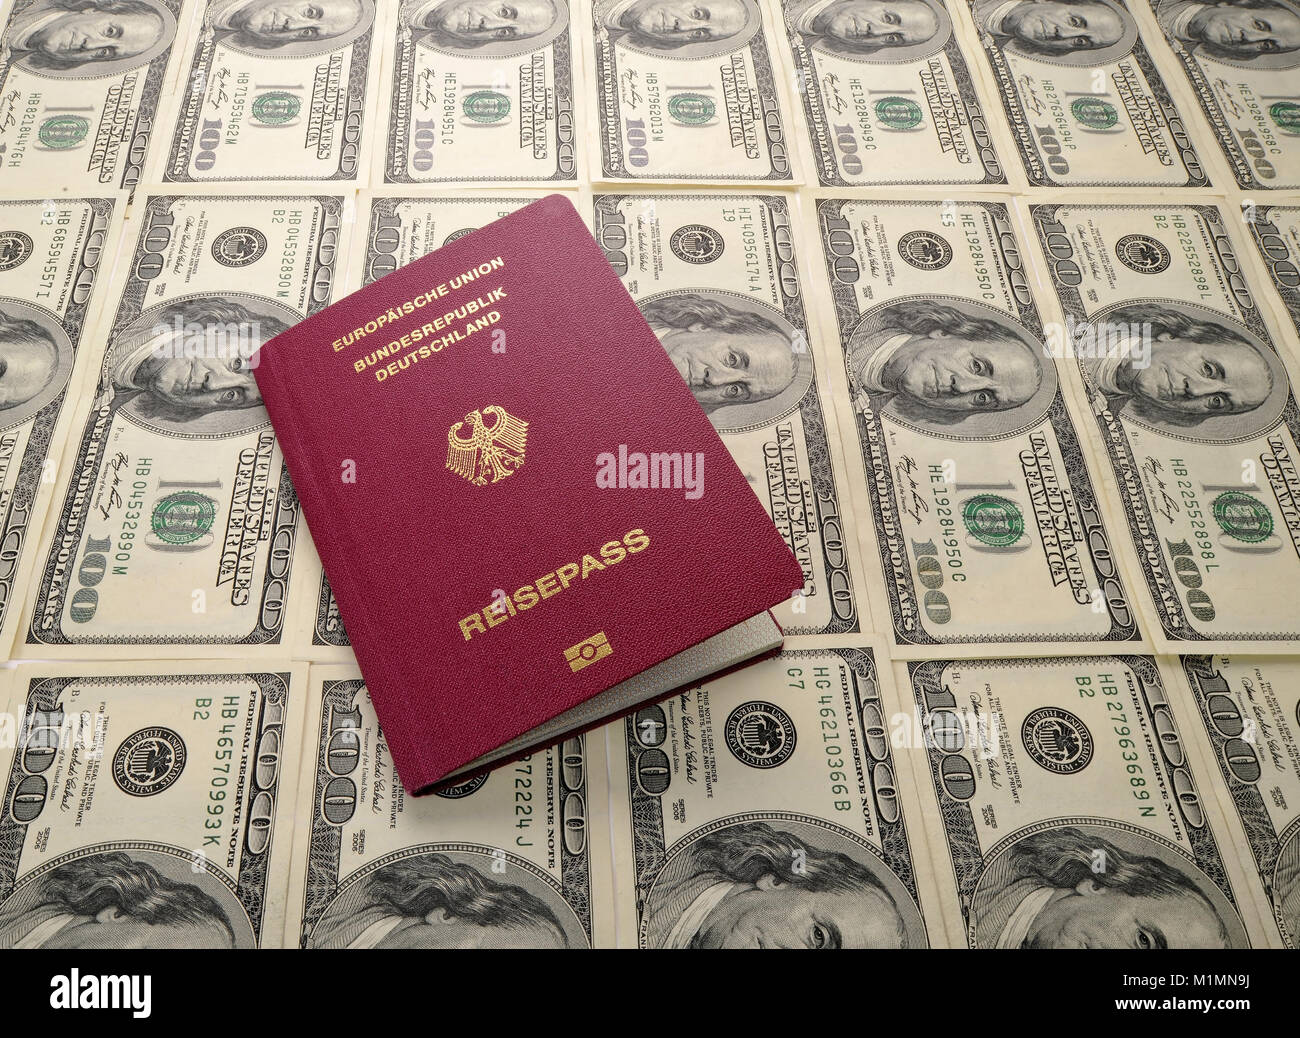 Dollar, passport, Reisepass Stock Photo